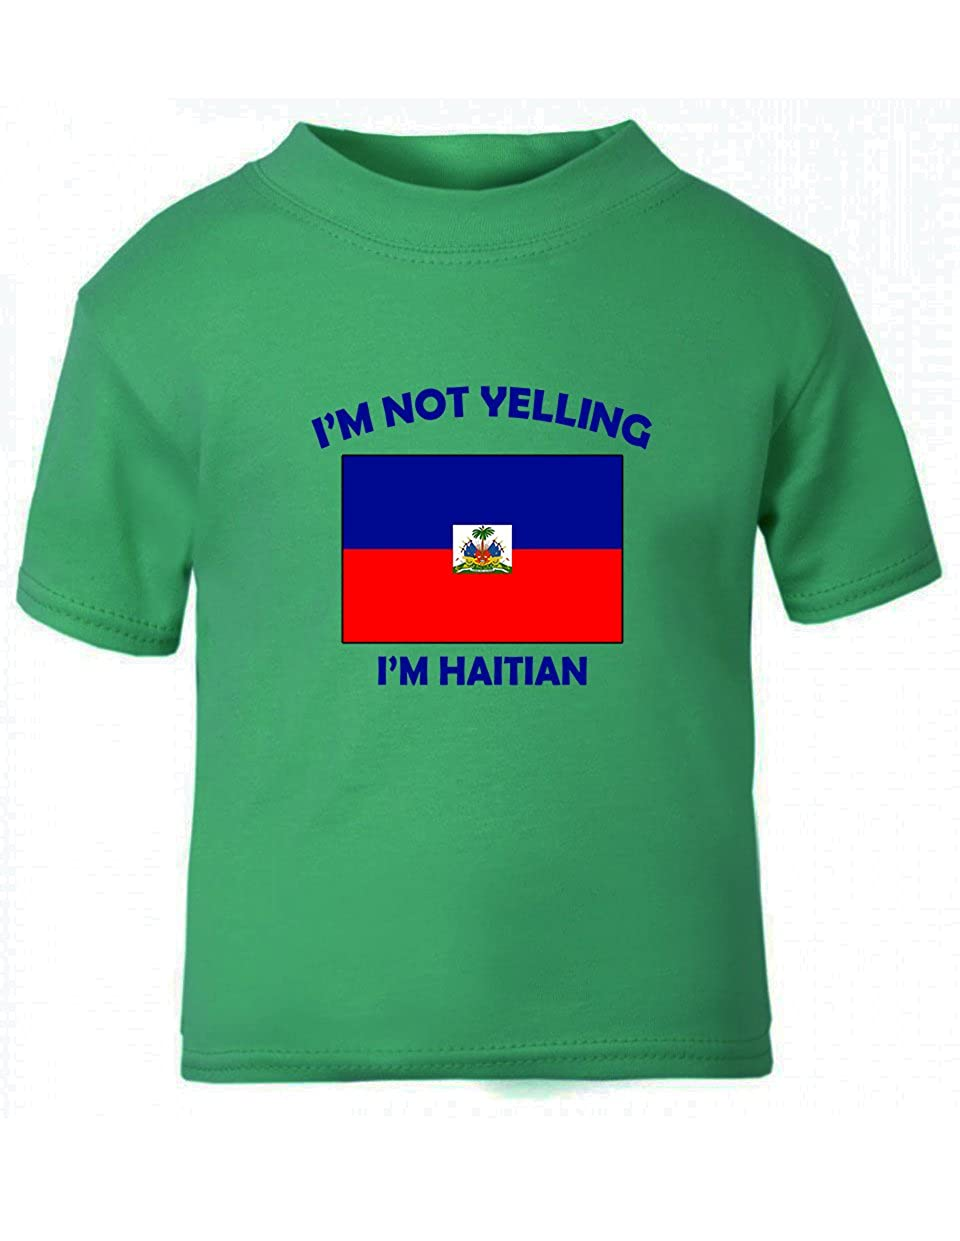 I'M Not Yelling I Am Haitian Haiti Toddler Baby Kid T-Shirt Tee TTYELLCOF018_B3T